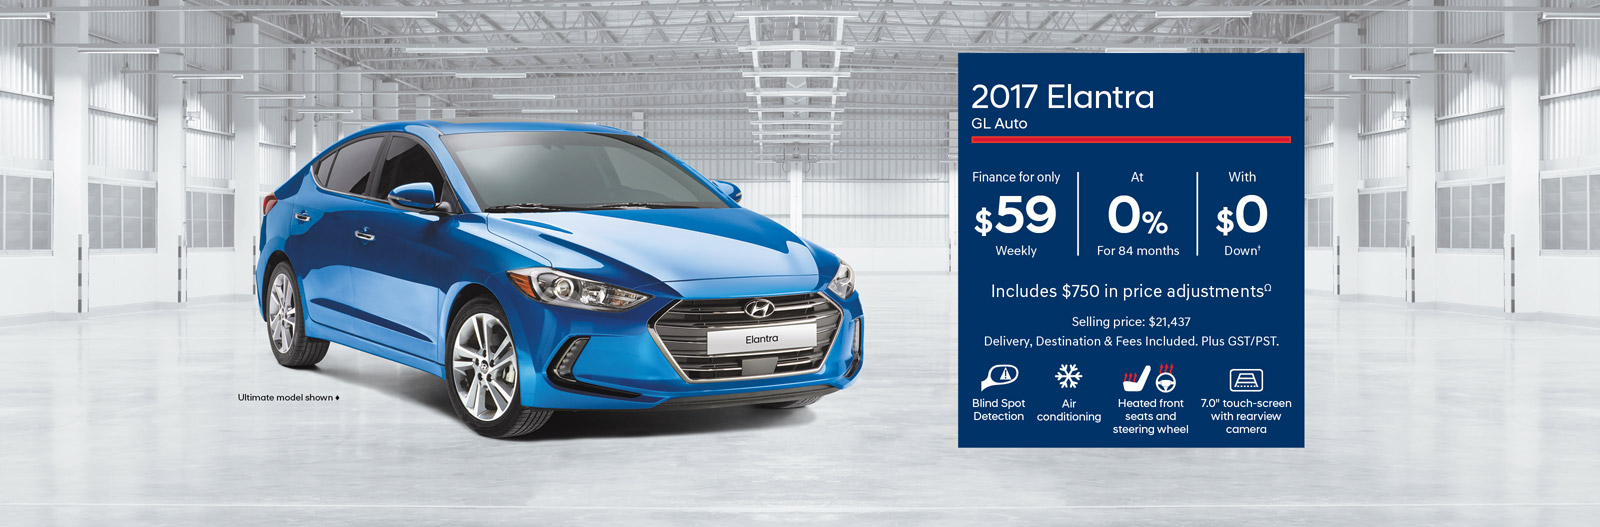 2017 Elantra - Finance for only $59 Weekly